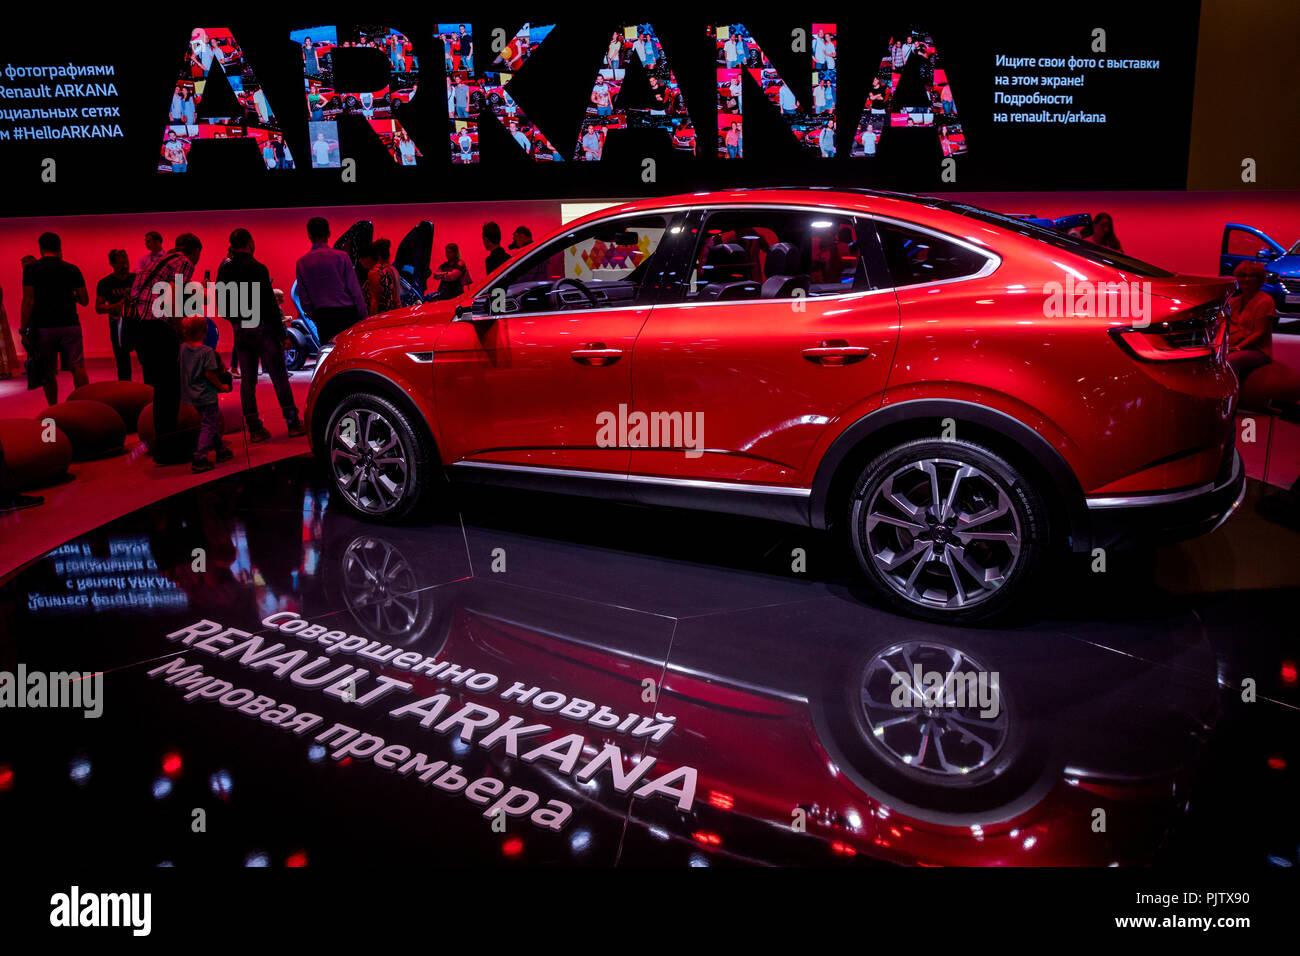 Presentation of the new crossover Renault Arkana at the Moscow International Motor Show 2018 in Moscow, Russia - Stock Image